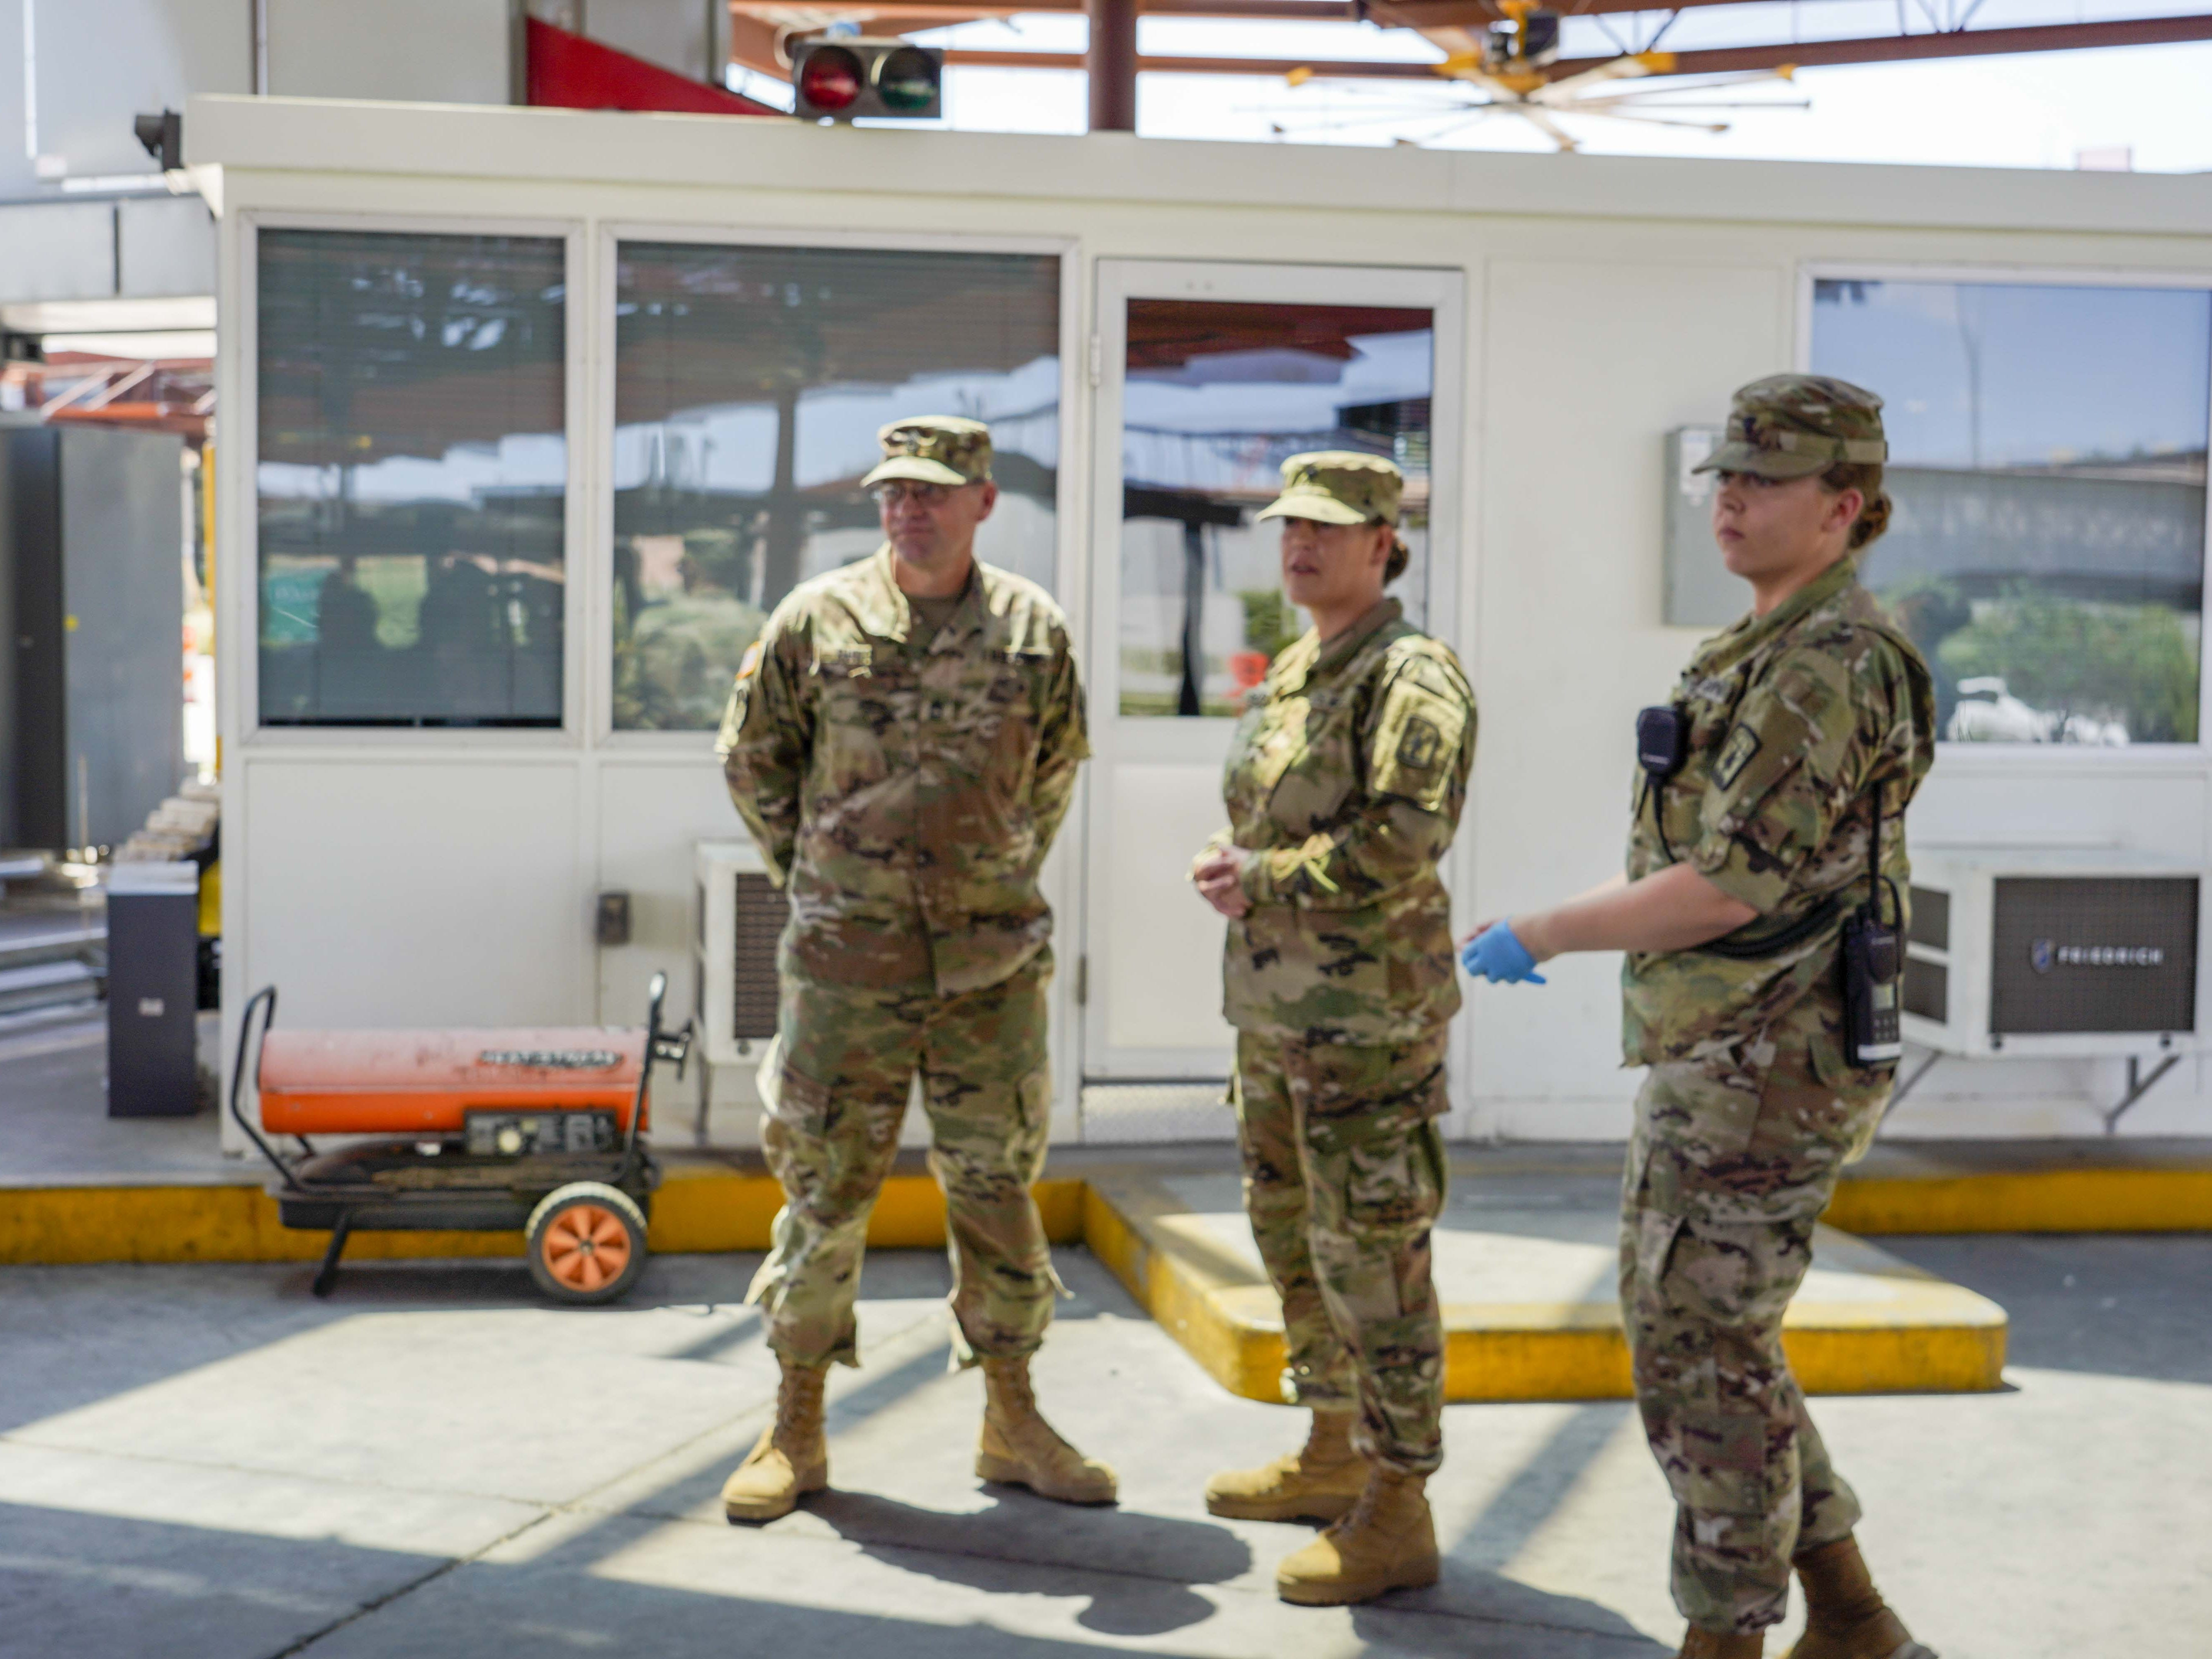 National Guard personnel are performing operational support functions, including nonintrusive inspections and monitoring cameras Aug. 1 at the Port of Nogales (Mariposa Crossing) in Nogales, Arizona.